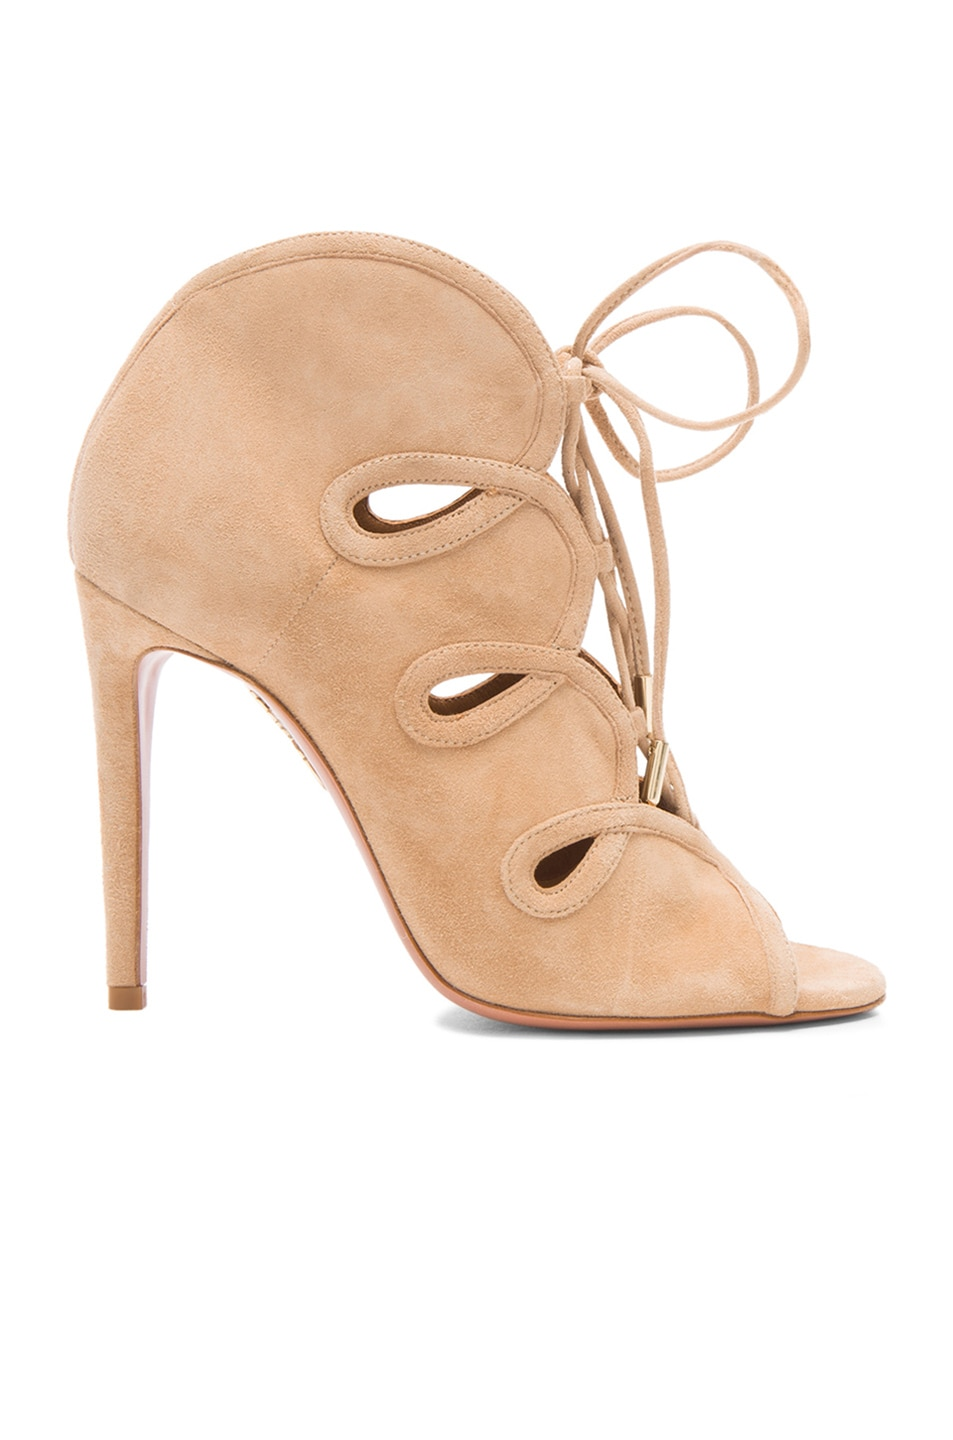 Image 1 of Aquazzura French Kiss Suede Heels in Nude